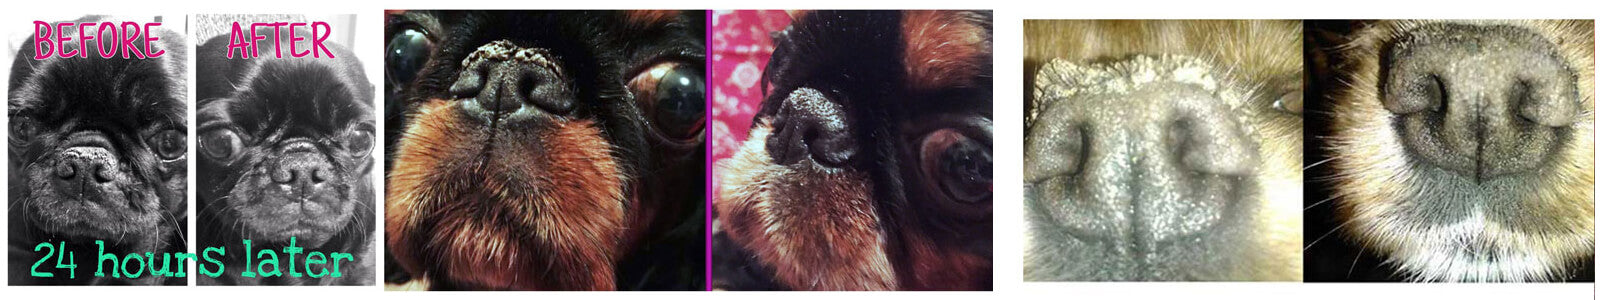 before after nose butter english toy spaniel